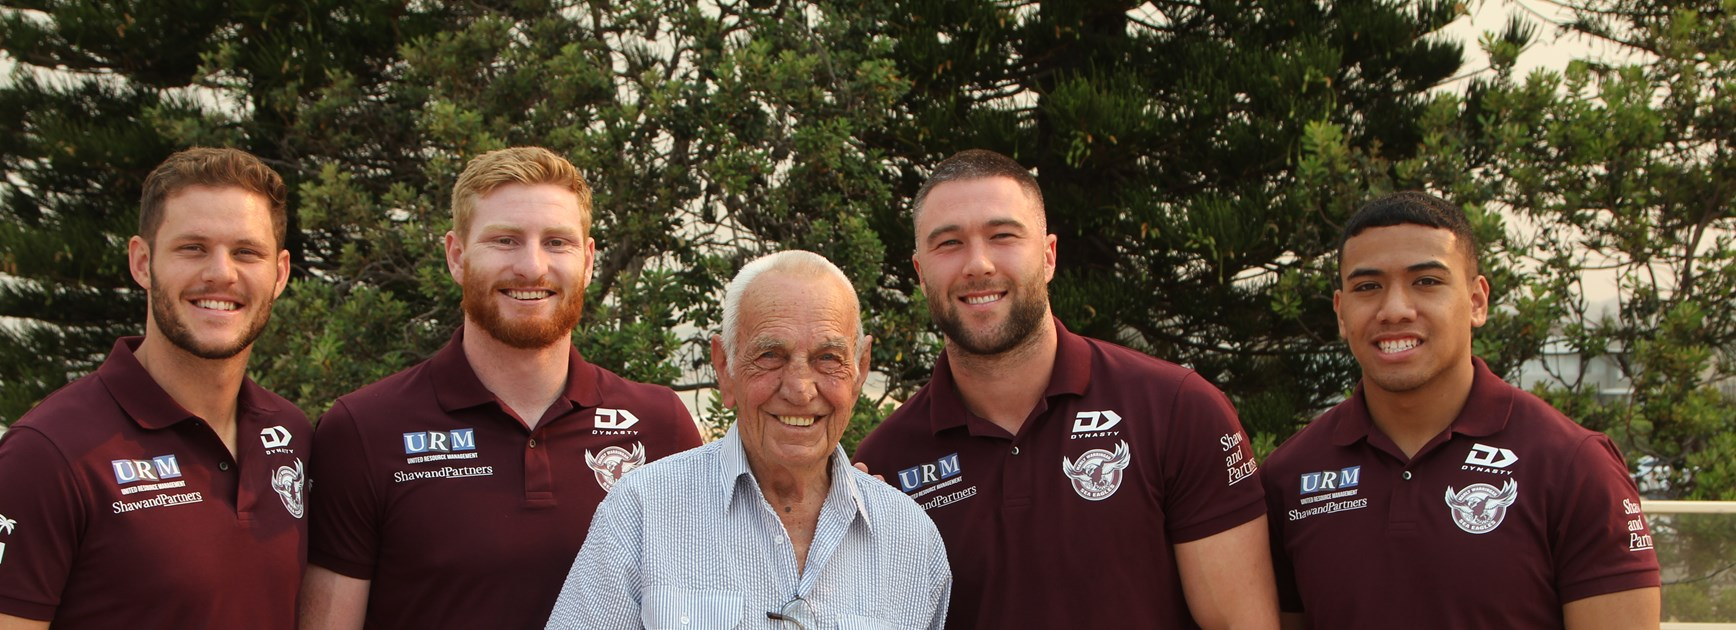 Sea Eagles proud to support Men of League function